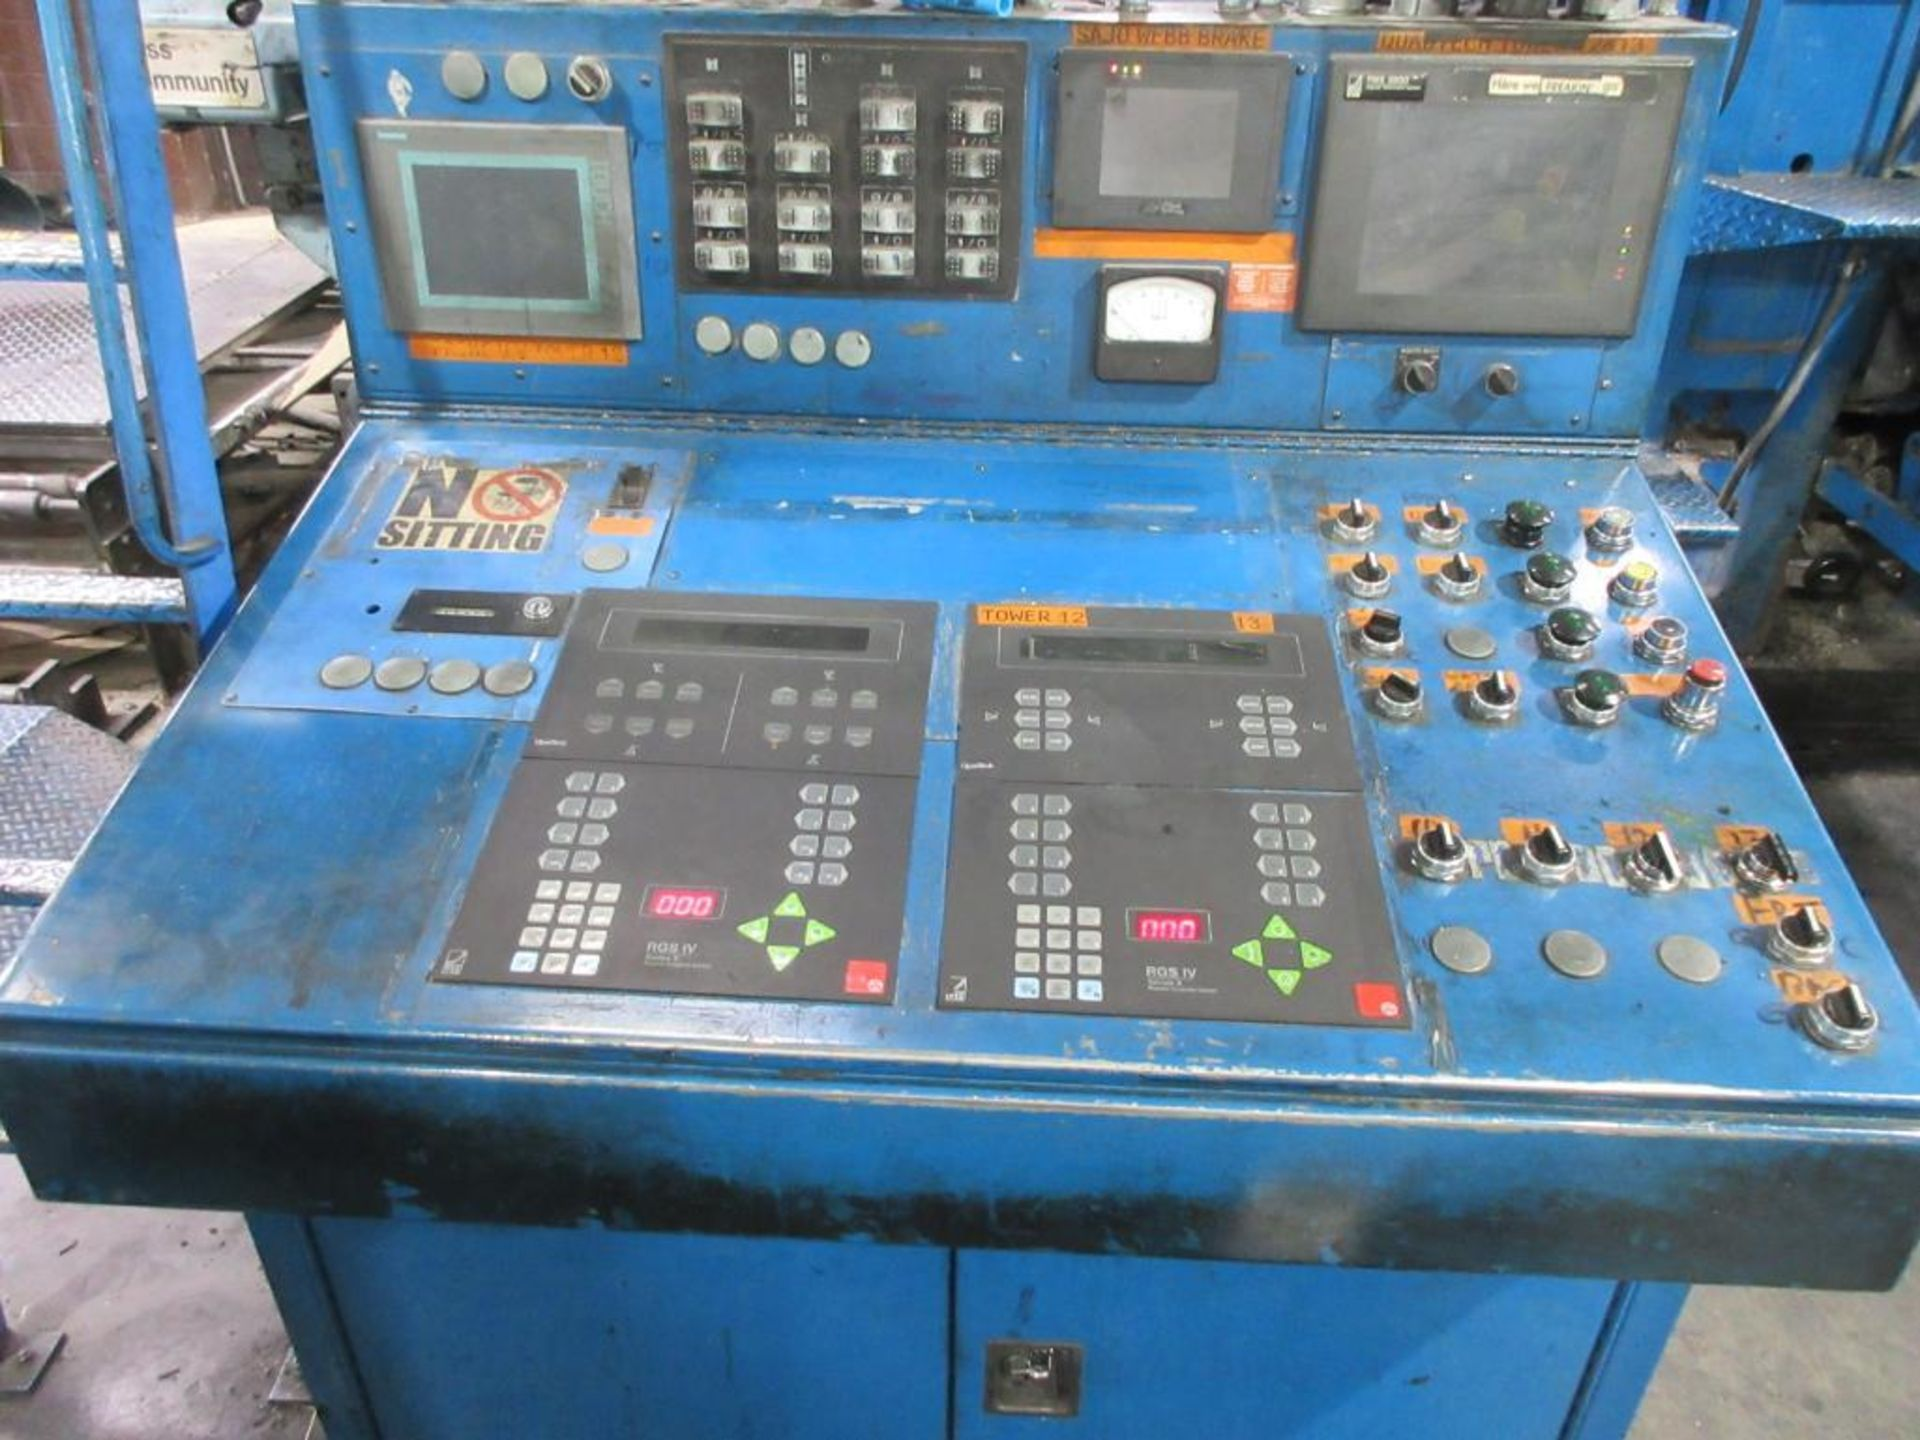 "Complete Goss/Ventura 22.75"" cut off 50 unit web offset press featuring: Ventura 30 4 high (0), Vent - Image 31 of 58"